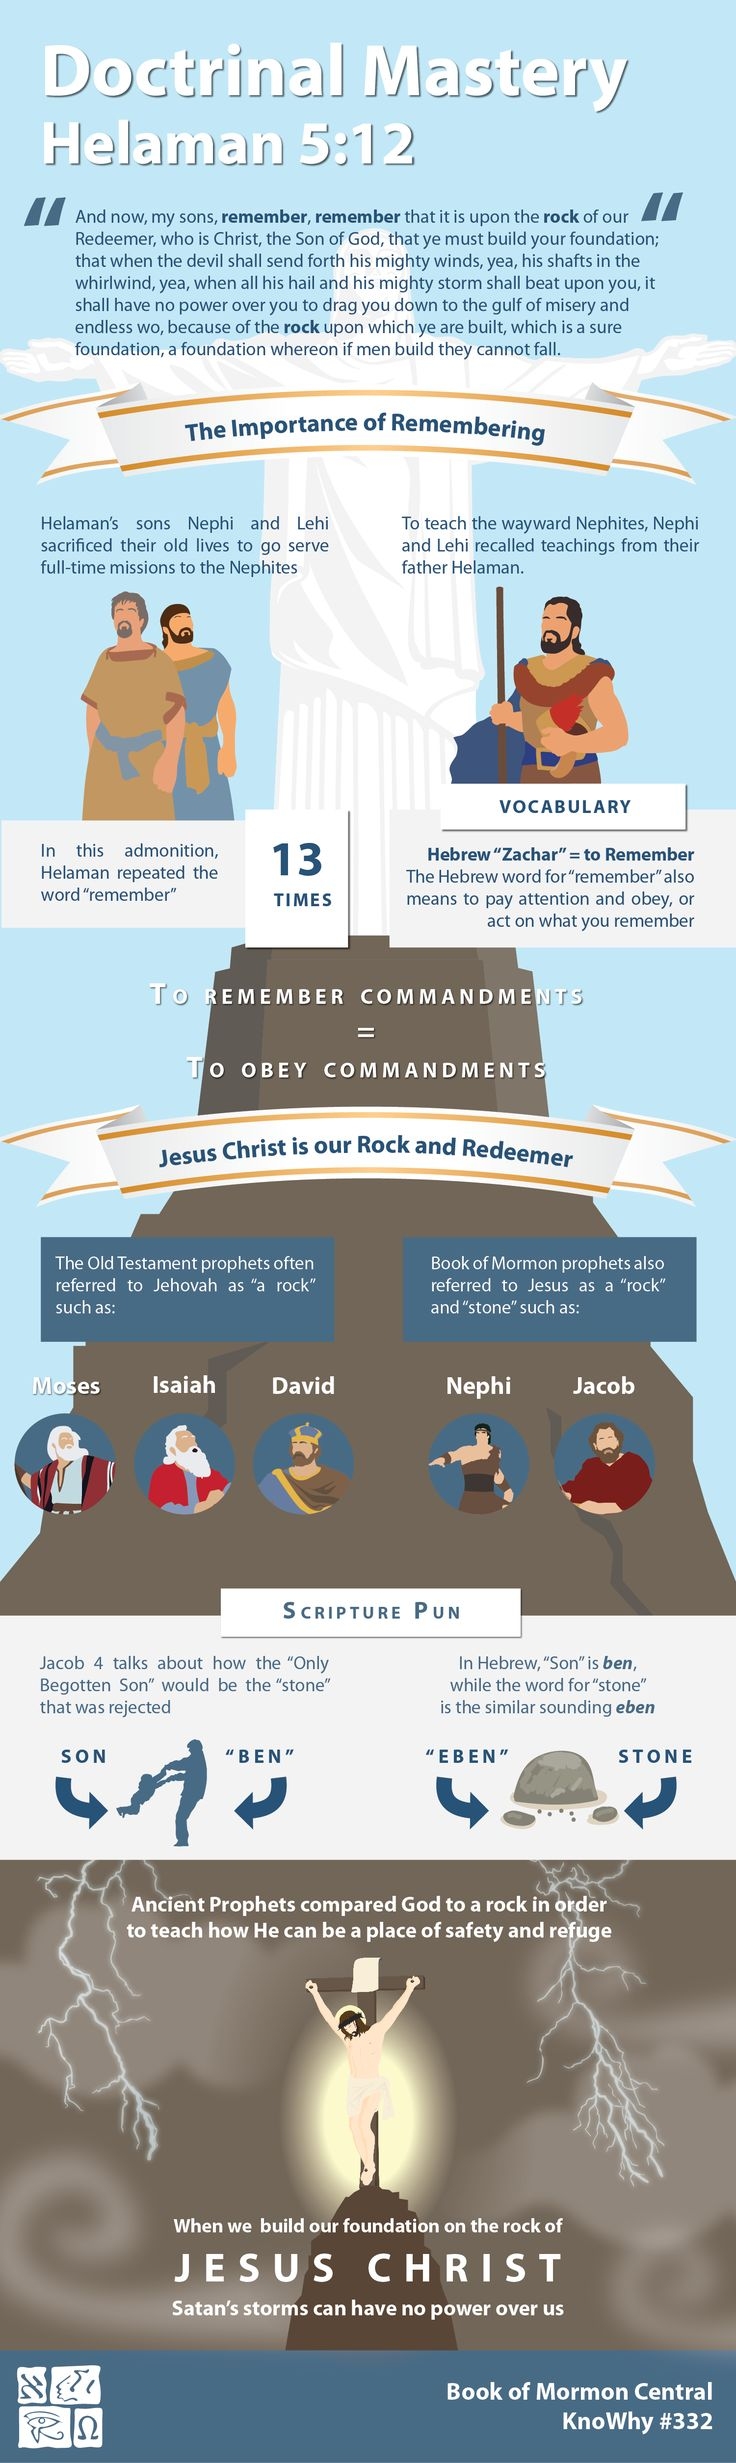 "In the Book of Mormon, Helaman told his sons to ""remember, remember that it is upon the rock of our Redeemer, who is Christ, the Son of God, that ye must build your foundation"".  Understanding the biblical meaning of ""remember"", or biblical imagery such as a ""rock"" or ""stone"", can bring a deeper knowledge to Helamans counsel. Learn more at...  https://knowhy.bookofmormoncentral.org/content/why-did-helaman-want-his-sons-to-remember-to-build-upon-the-rock"